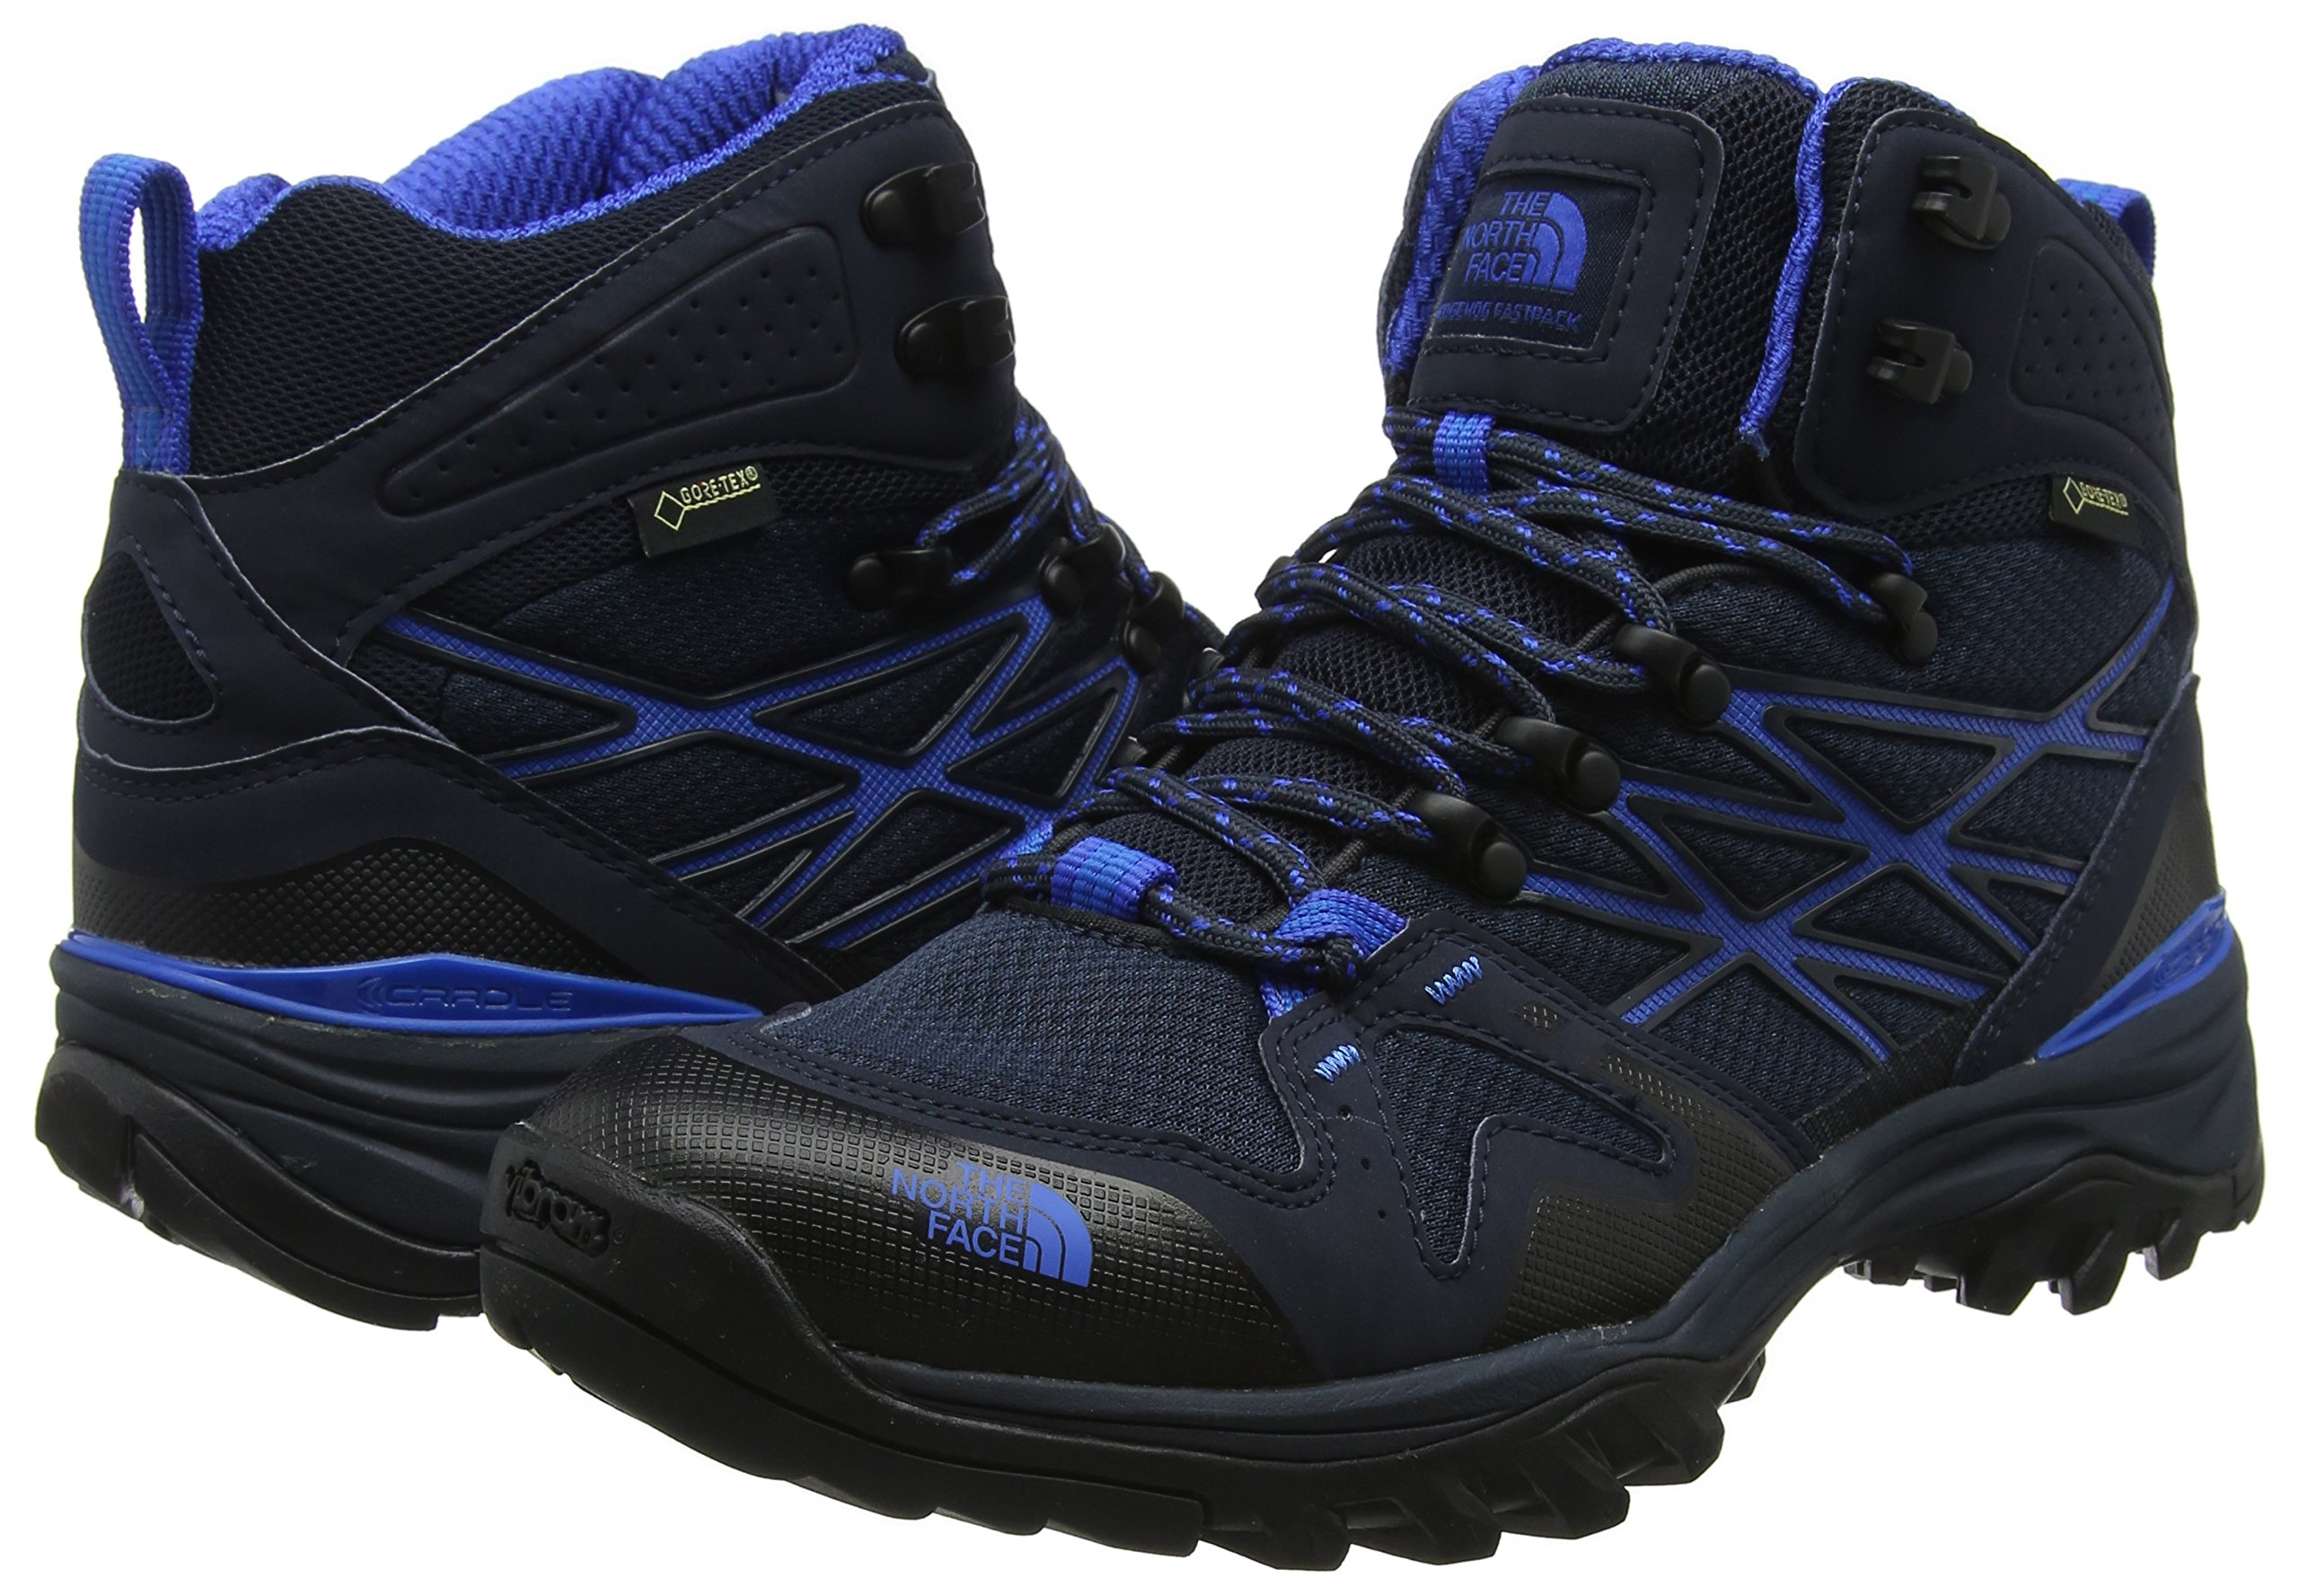 91sFuwWcyVL - THE NORTH FACE Men's Hedgehog Fastpack Mid Gtx High Rise Hiking Boots